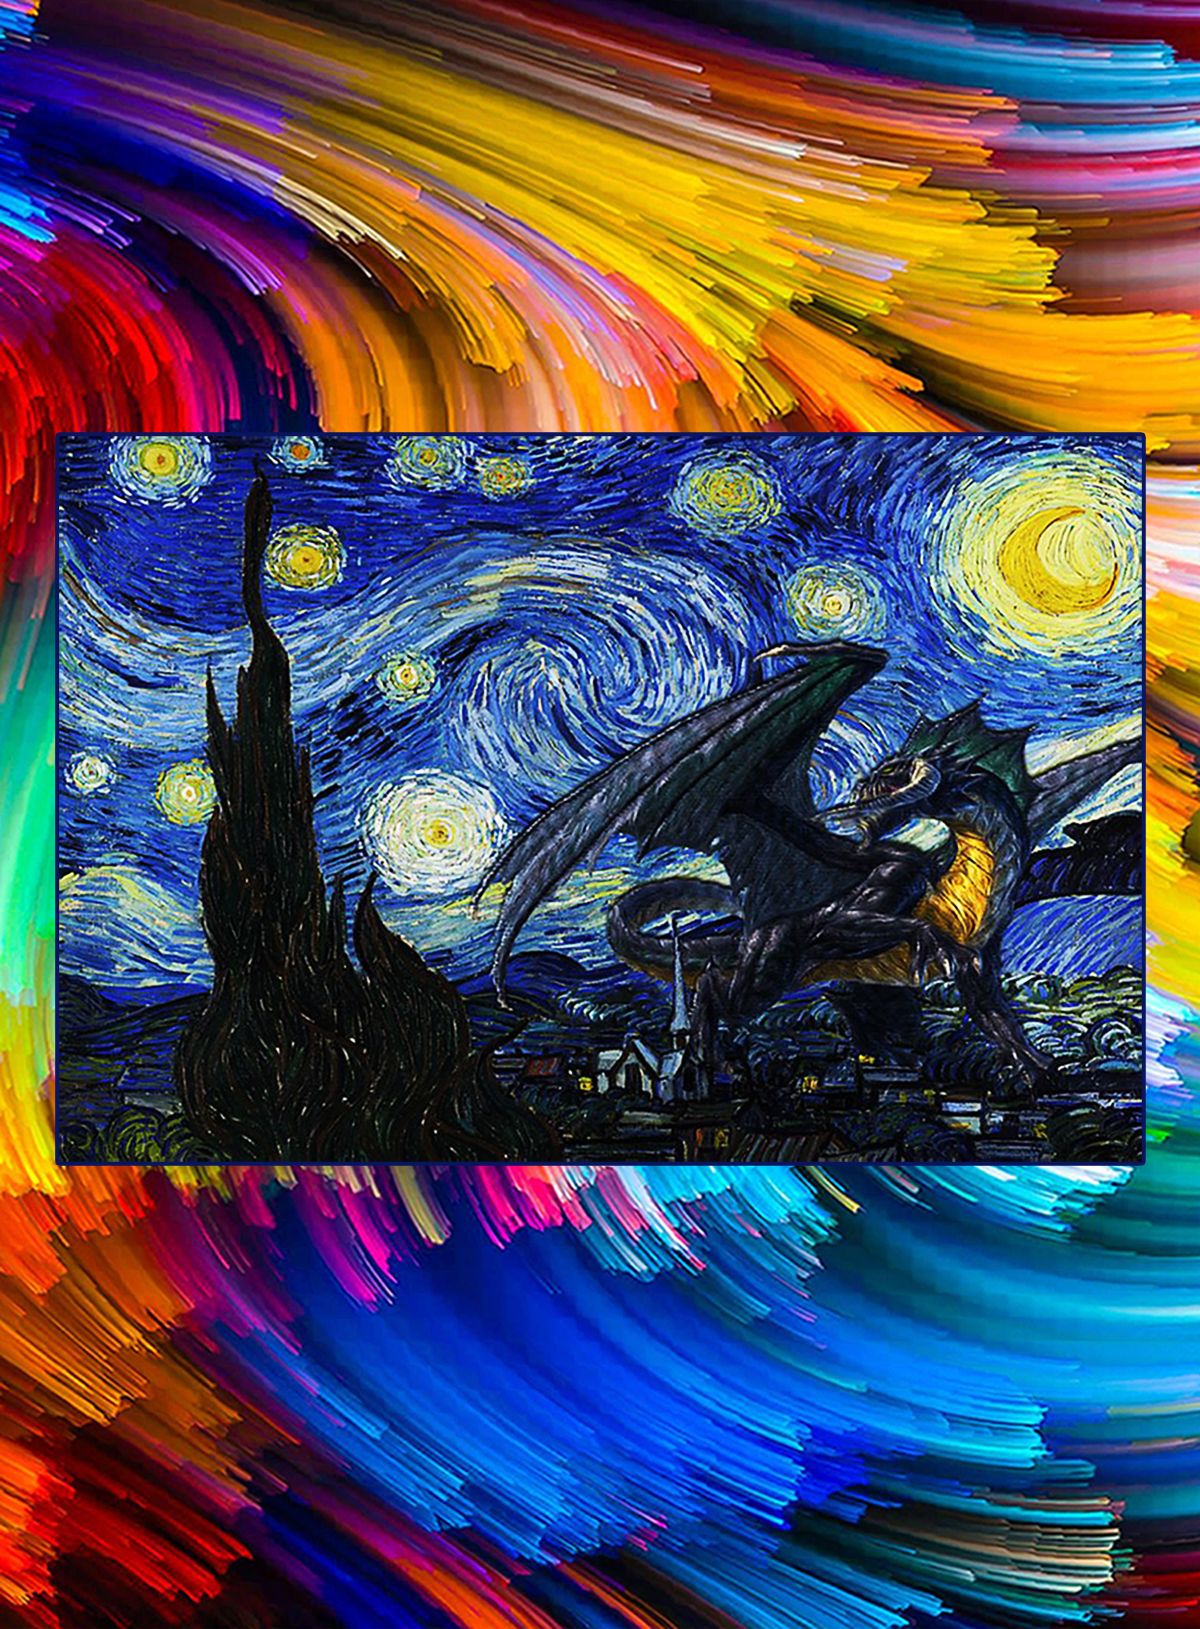 Dragon love starry night poster - A1